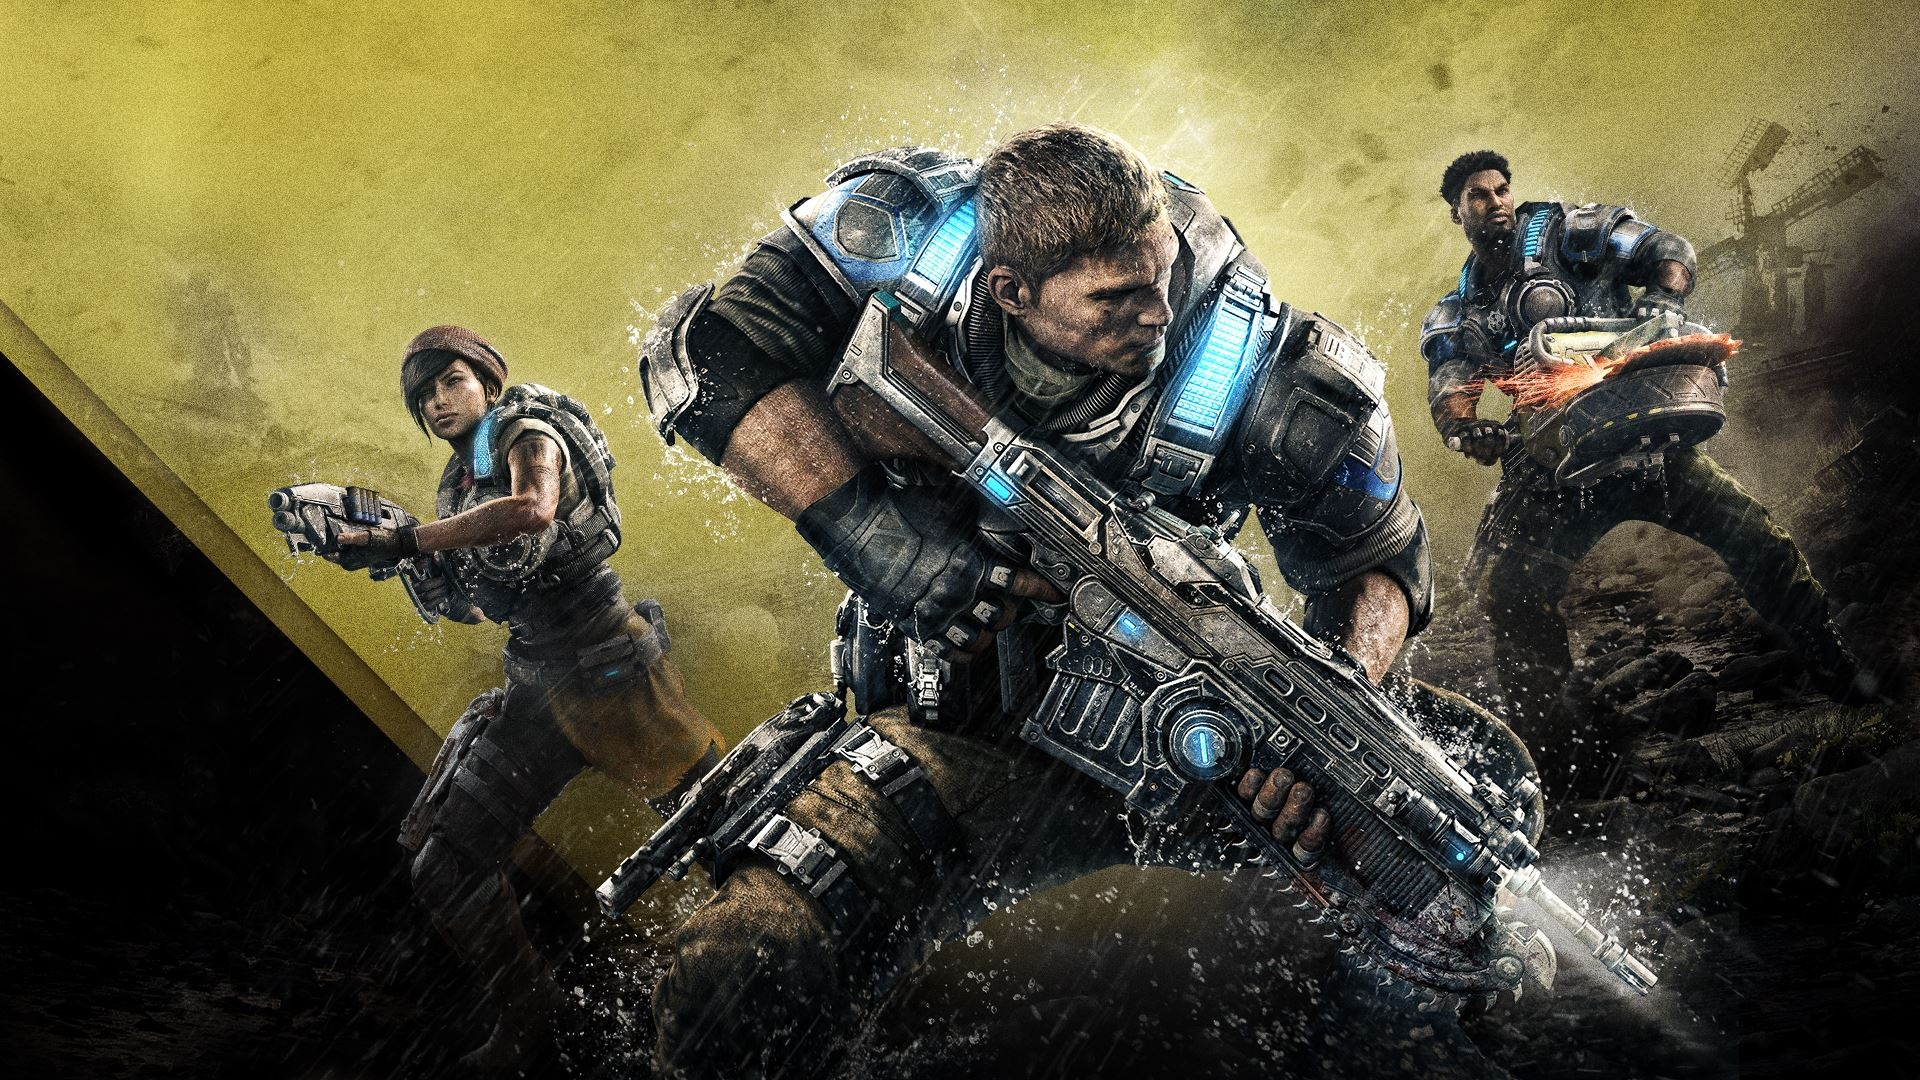 Gears Of War 4 Ultimate Edition Wallpapers 1920x1080 1030092